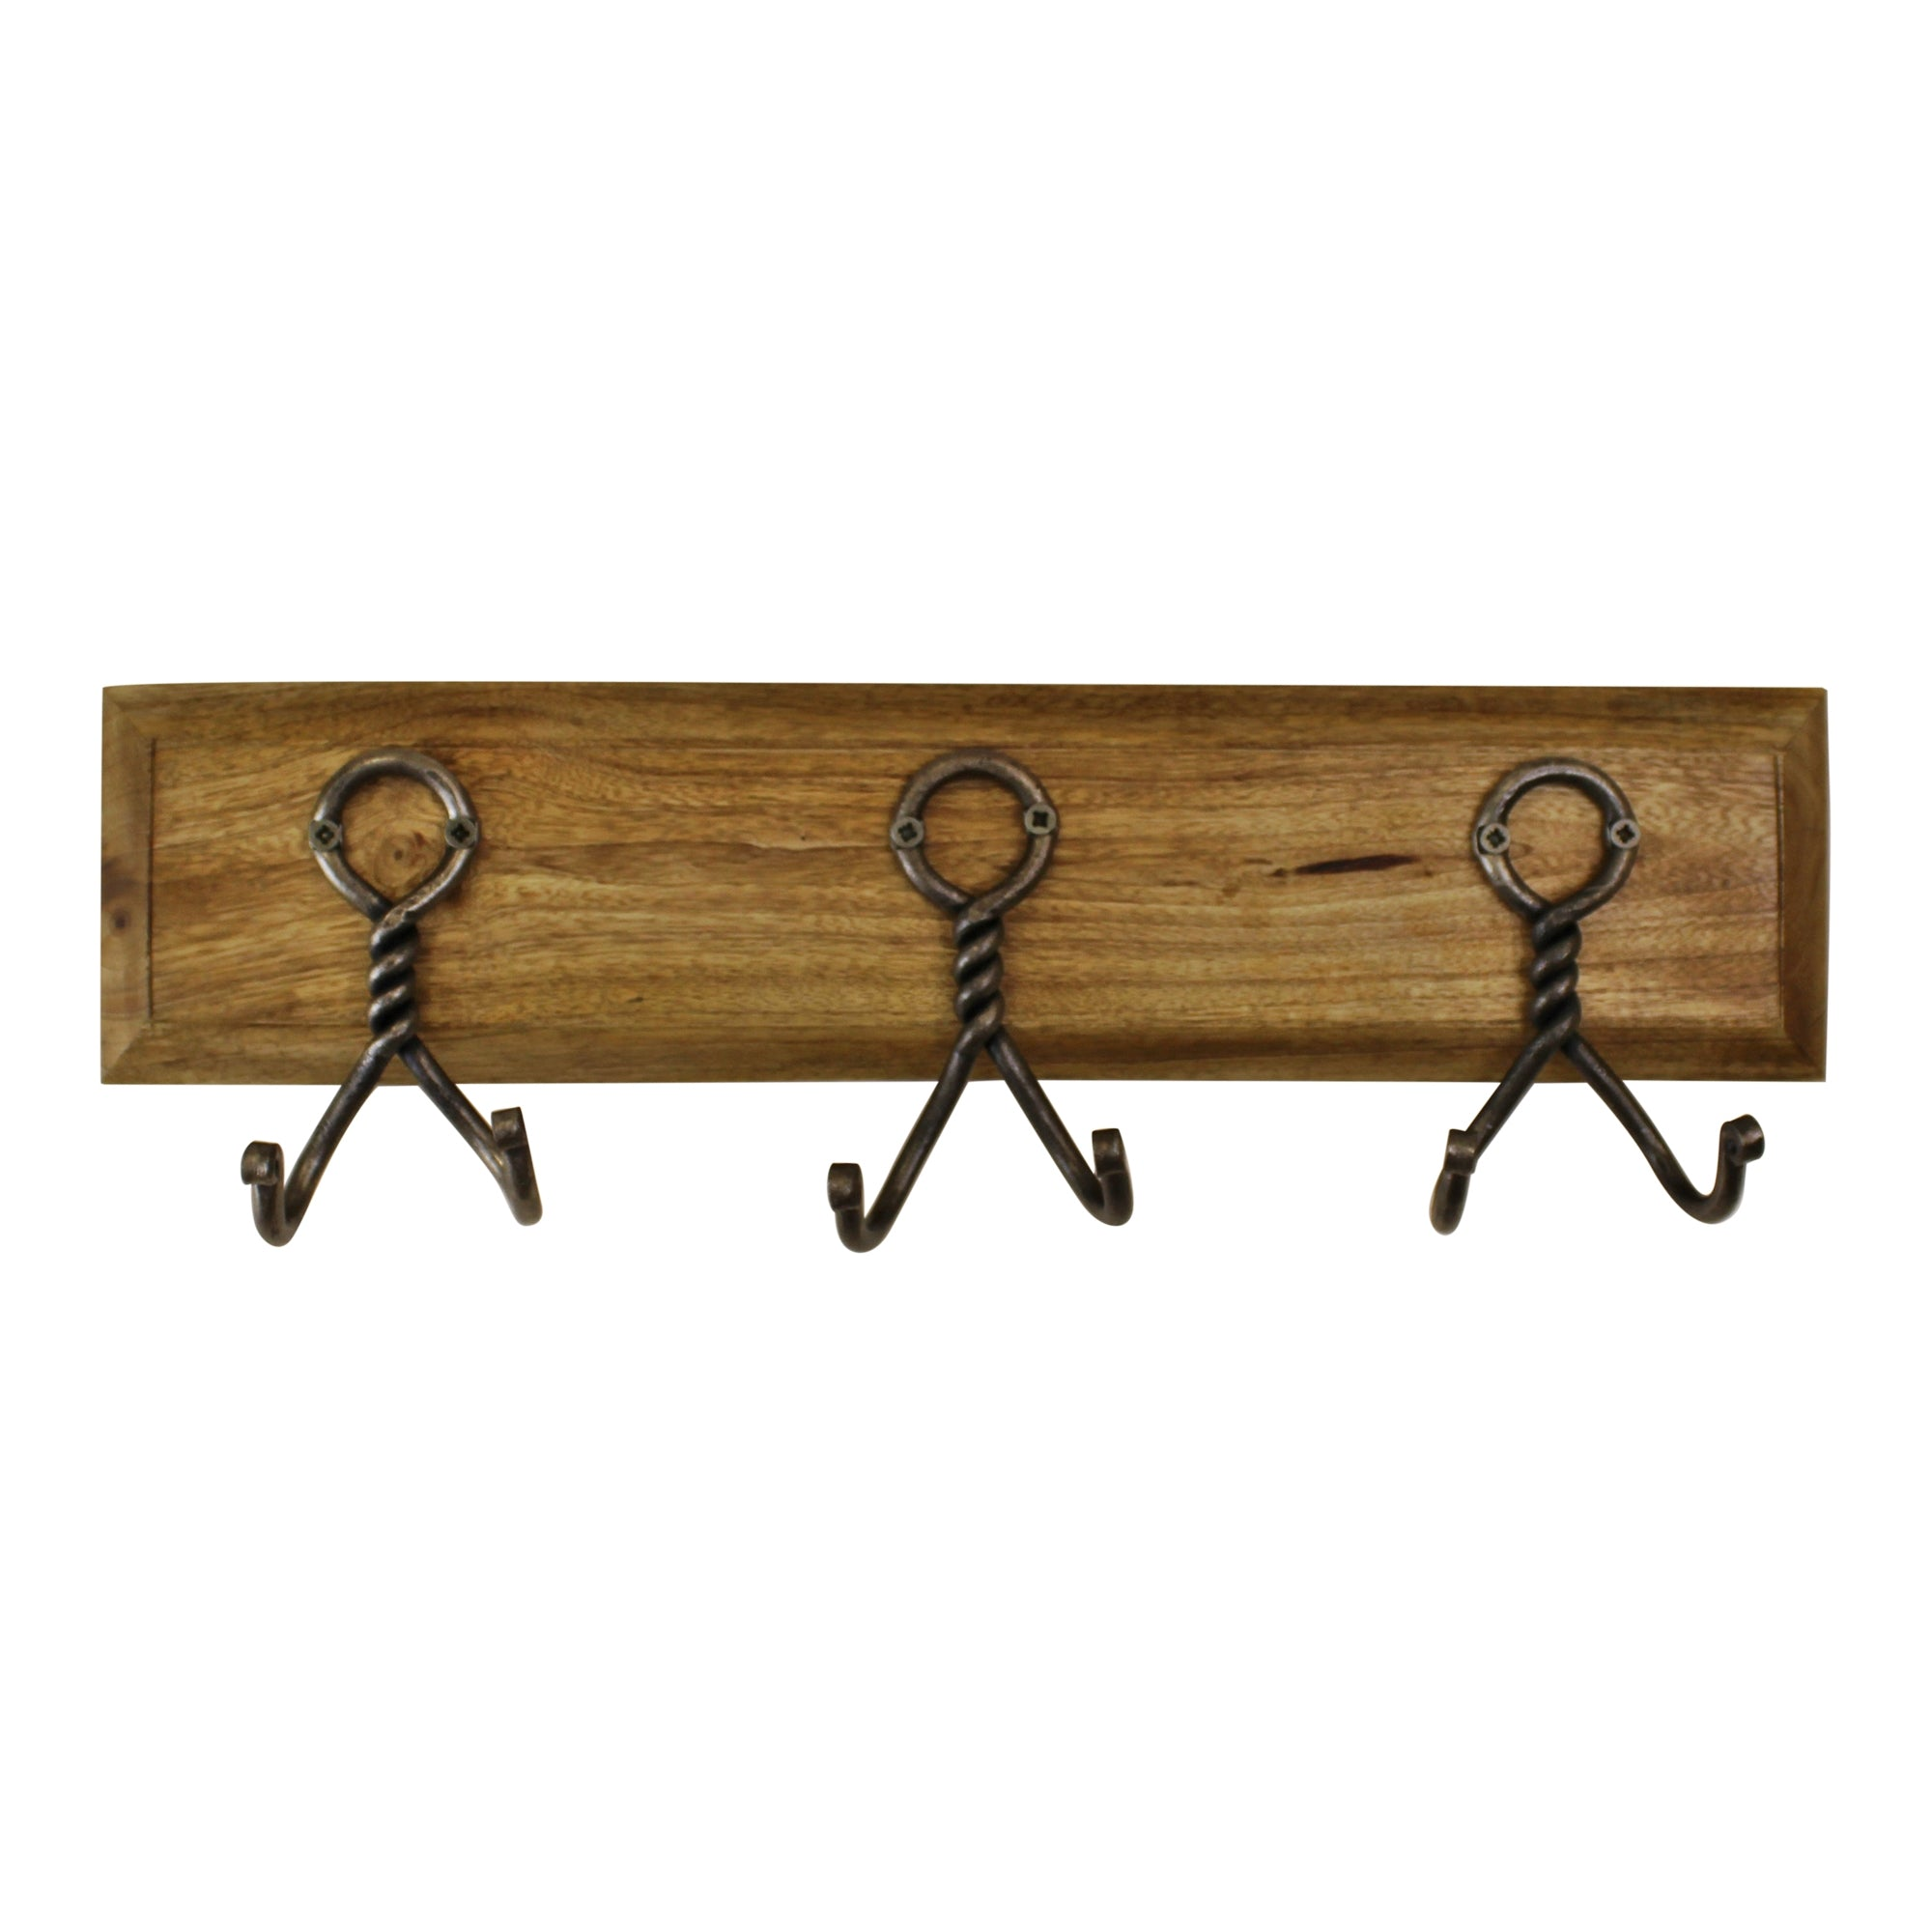 3 Piece Double Metal Hooks On Wooden Base, Clasps & Hooks by Low Cost Gifts